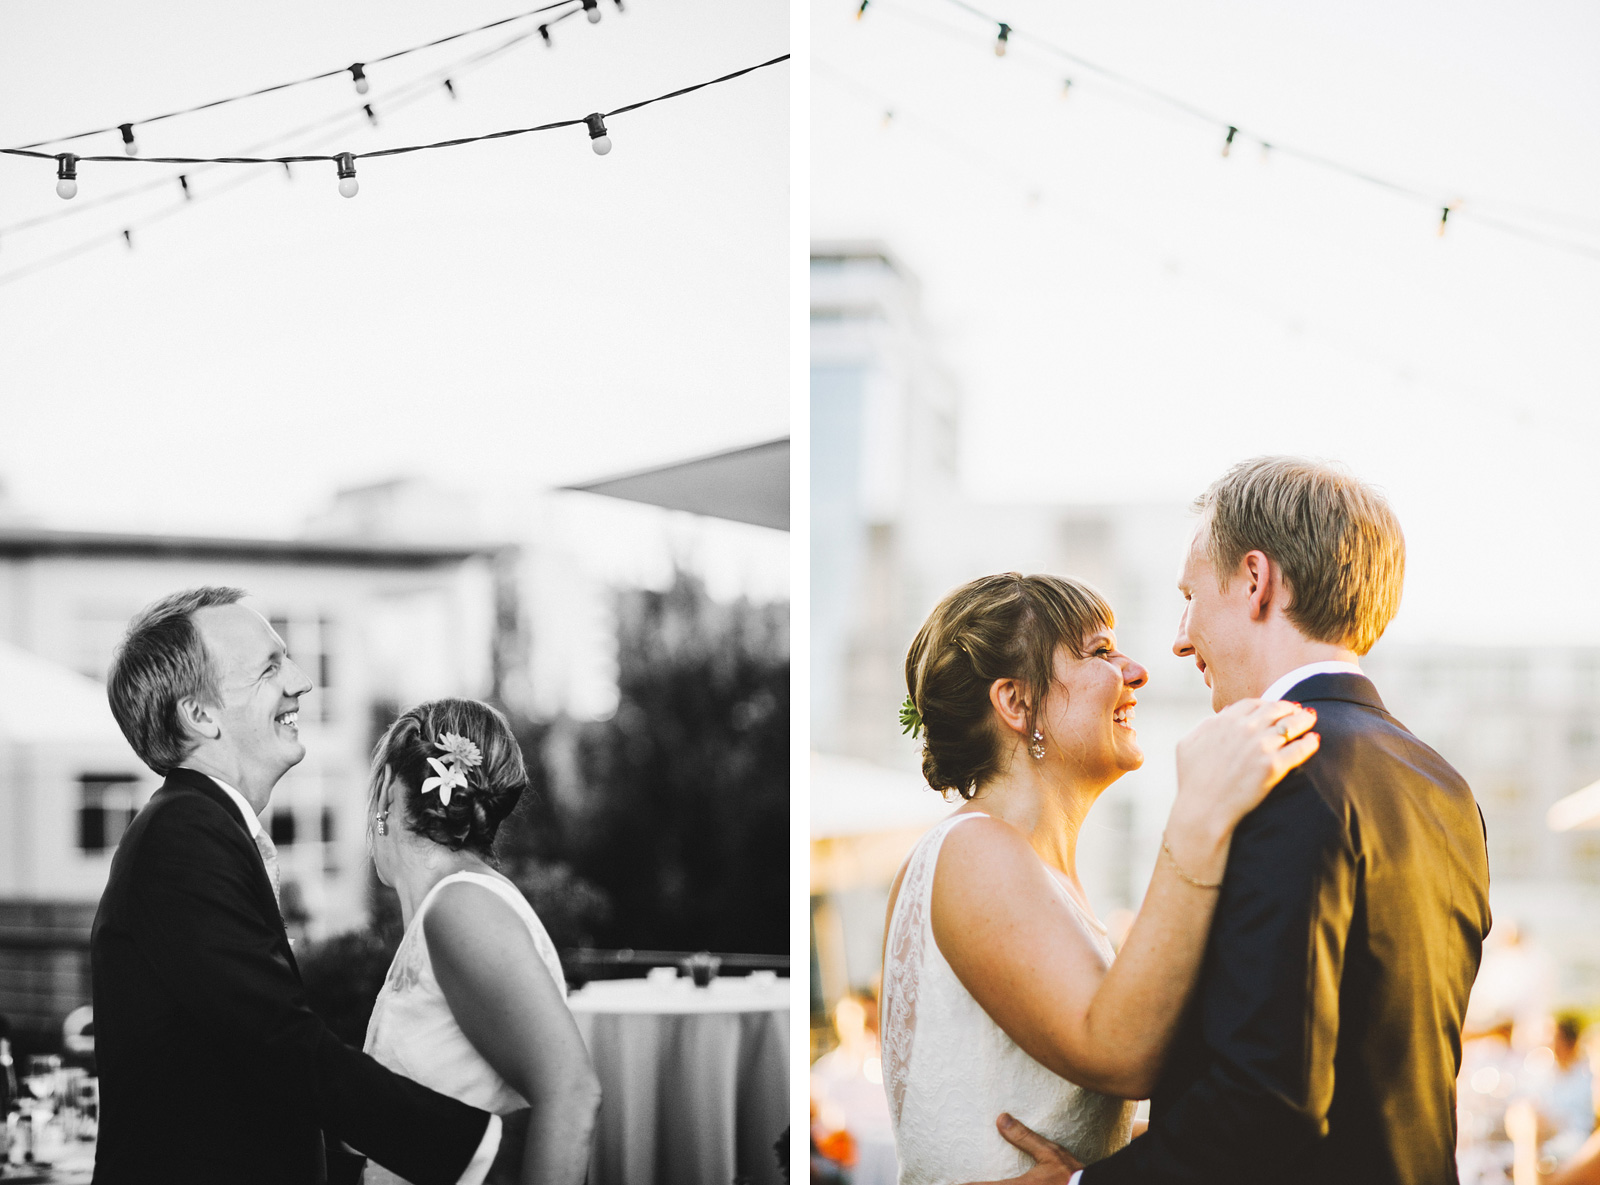 Bride and Groom's first dance | Ecotrust Rooftop Wedding in Downtown PDX